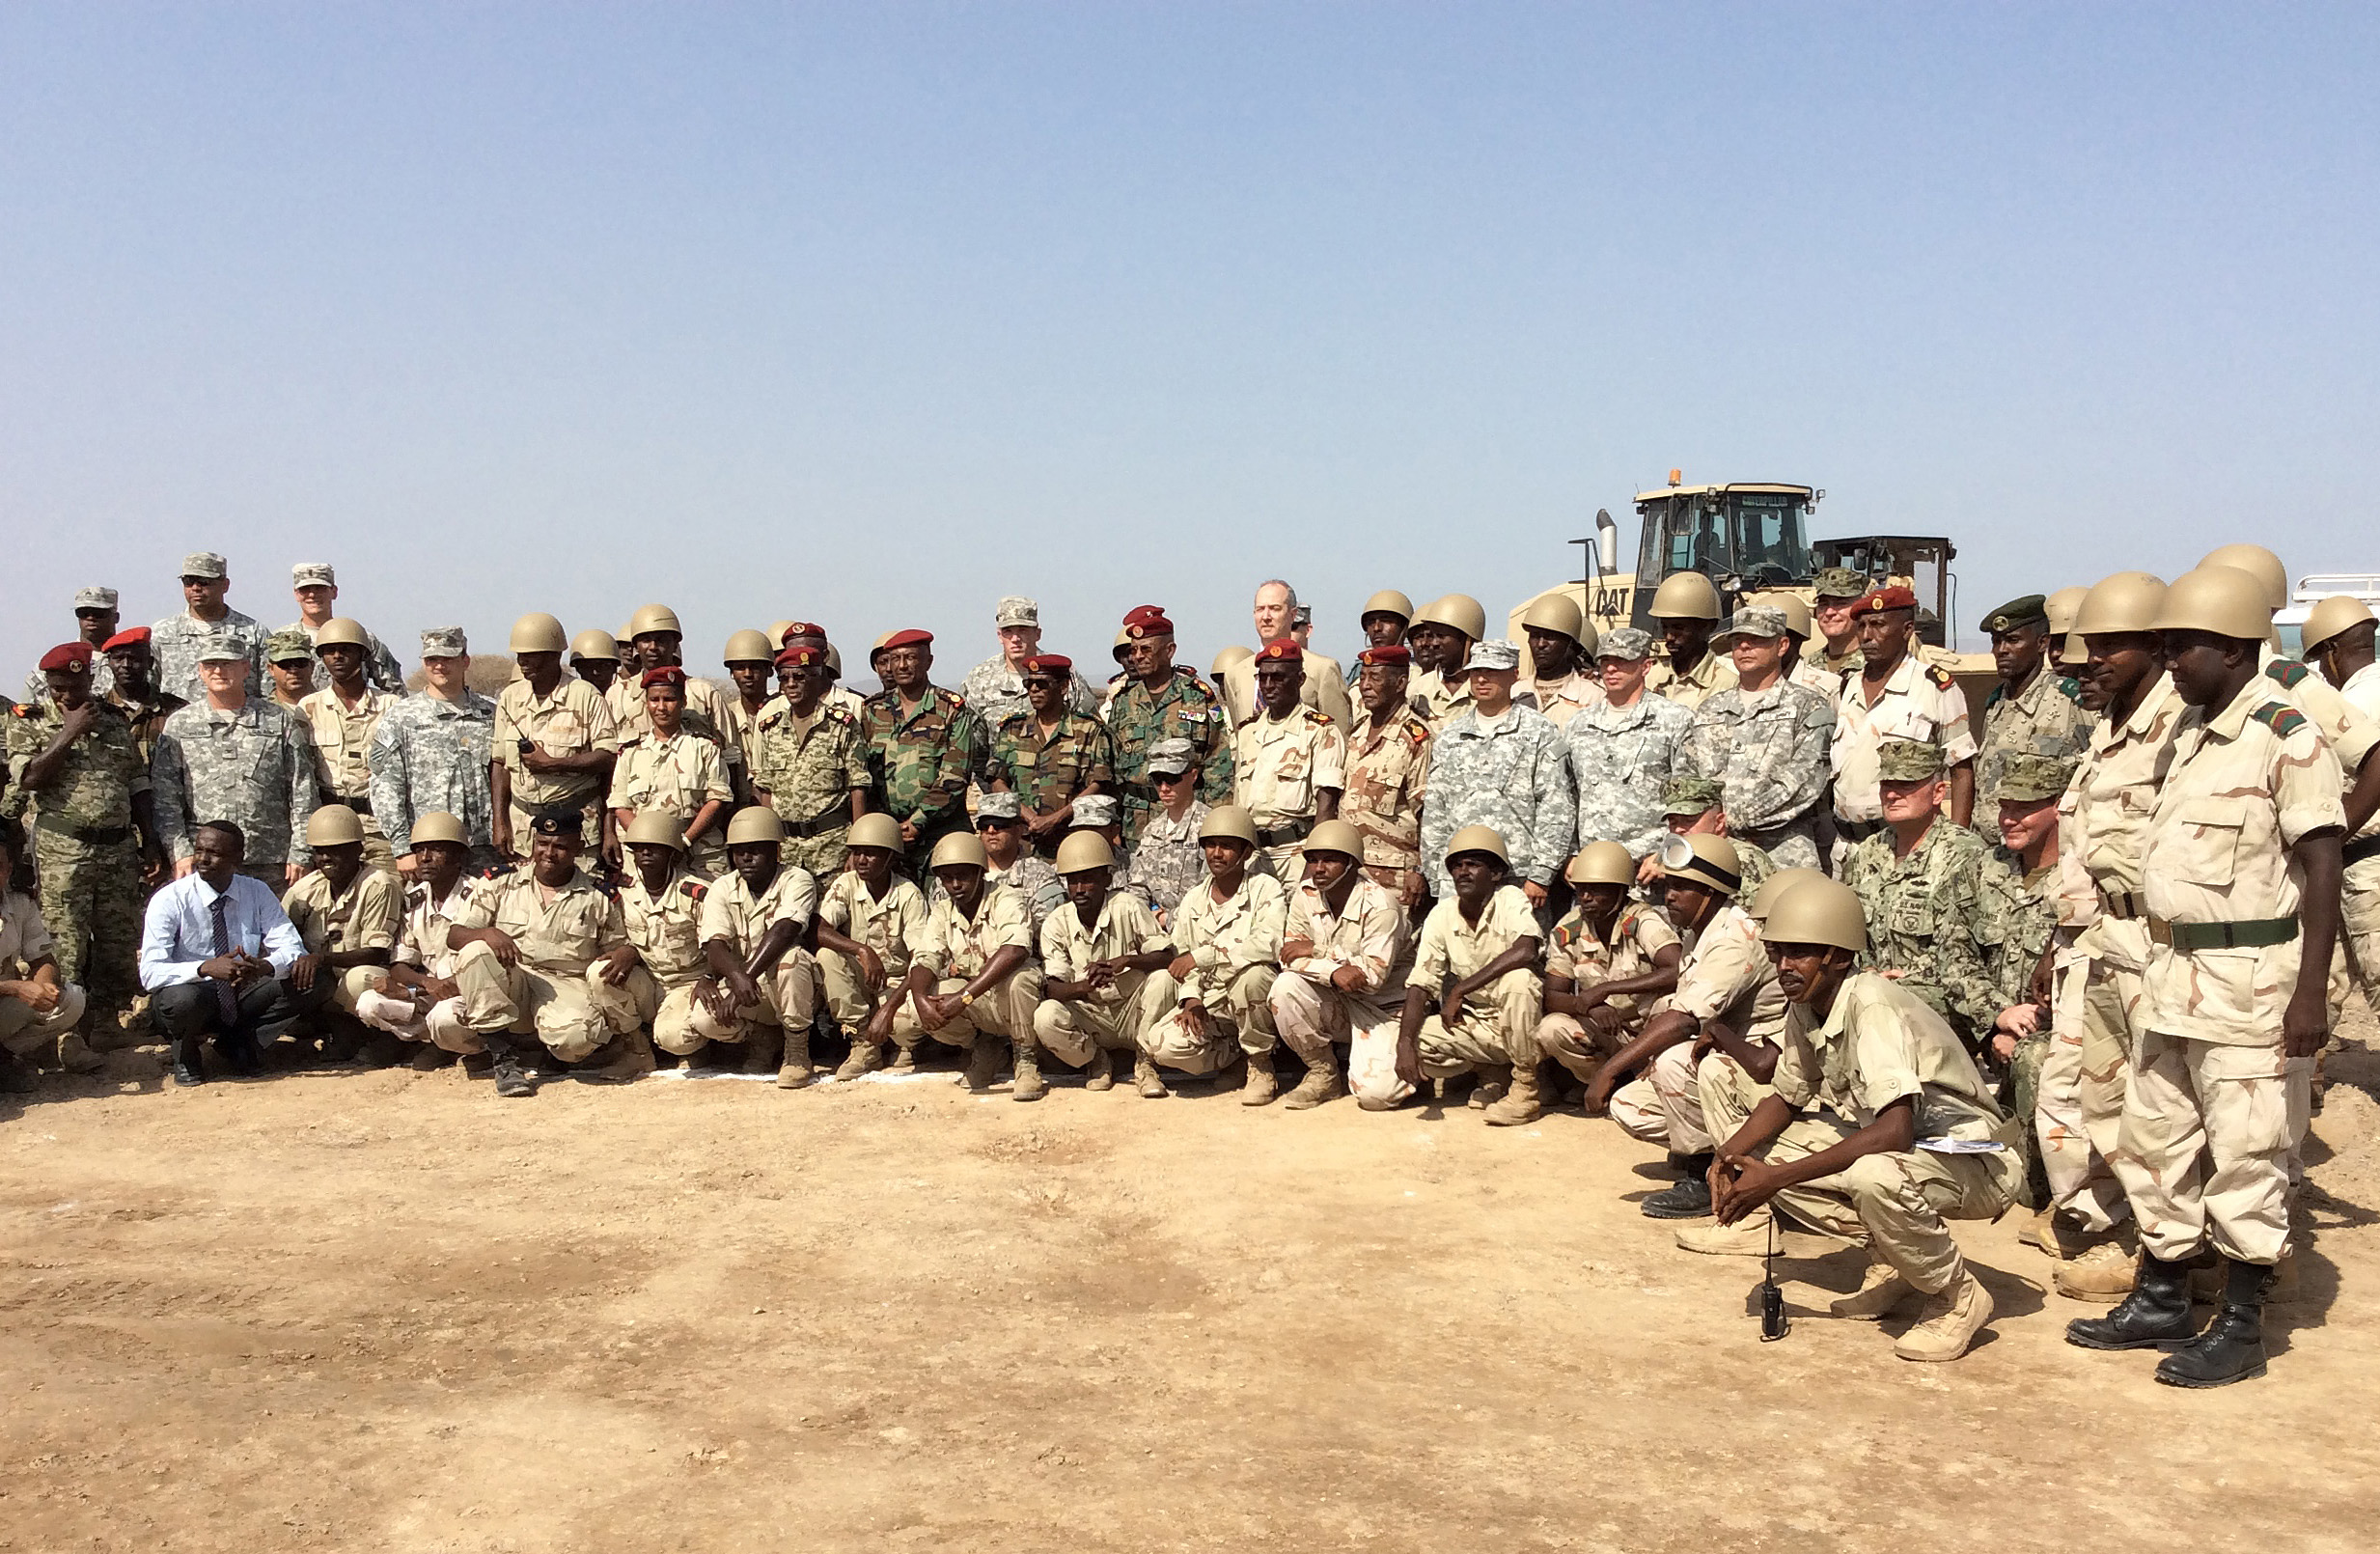 Camp Lemonnier, Djibouti (May 14, 2015) U.S Navy Seabees assigned to Naval Mobile Construction Battalion (NMCB) 14, U.S. Army 47th Transportation Company, and the Djiboutian Army Construction Engineers pose at the culminating event and awards ceremony for a U.S. Army-led Counter Terrorism Logistics and Engineering training evolution. NMCB-14 Detachment HOA is assigned to Camp Lemonnier in support of Combined Joint Task Force–Horn of Africa. (U.S. Navy photo by Lieutenant Junior Grade Stephen Woodham)